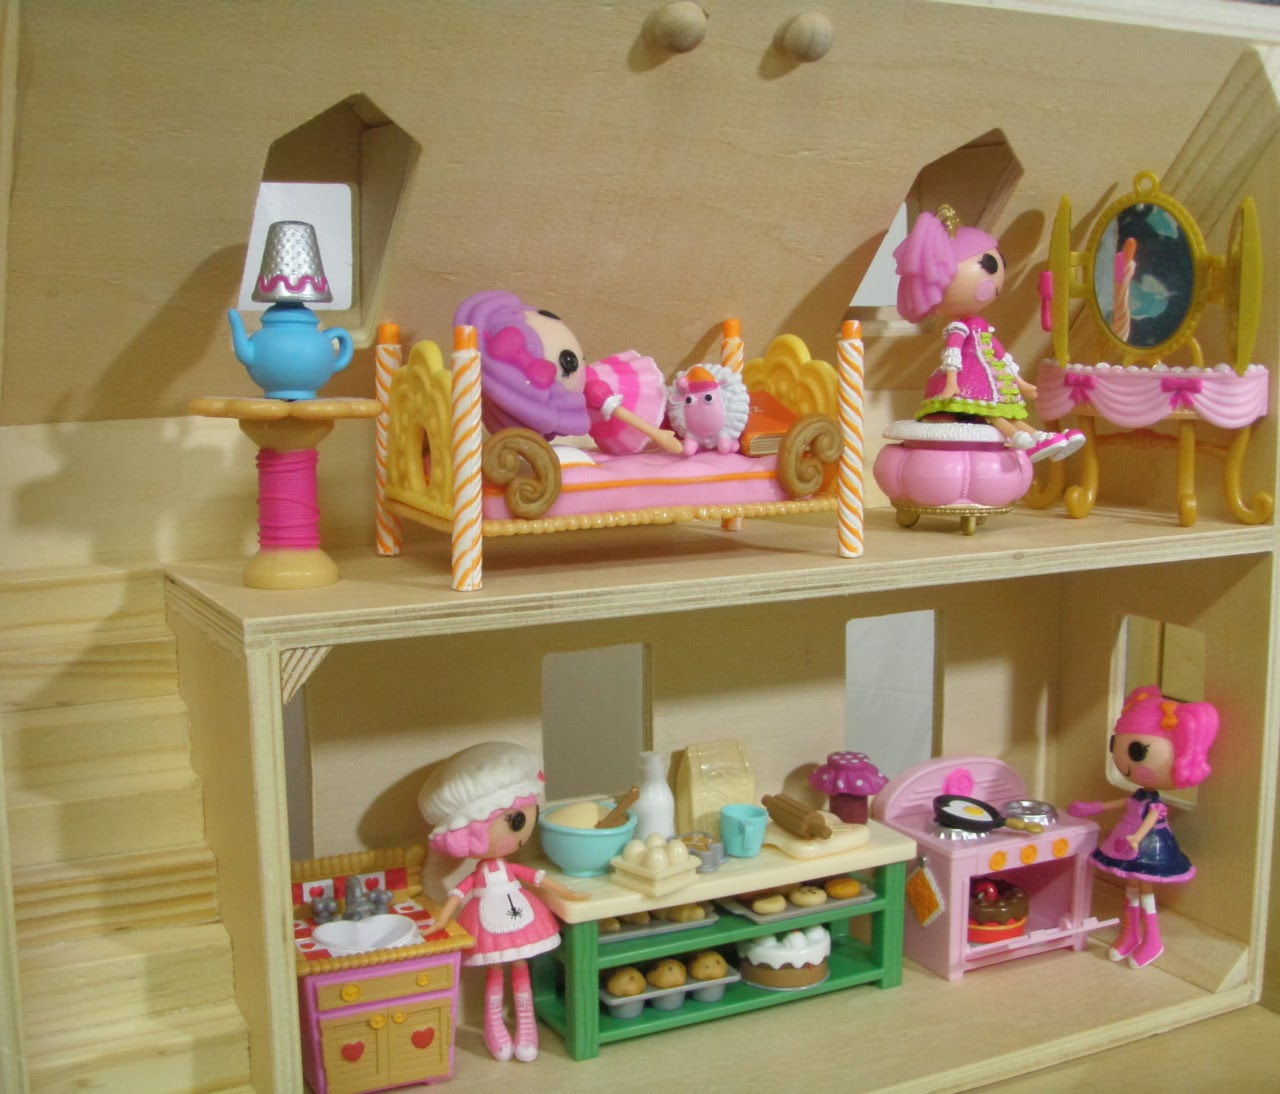 added some miniature cakes and furniture from the Li'l Woodzeez ...